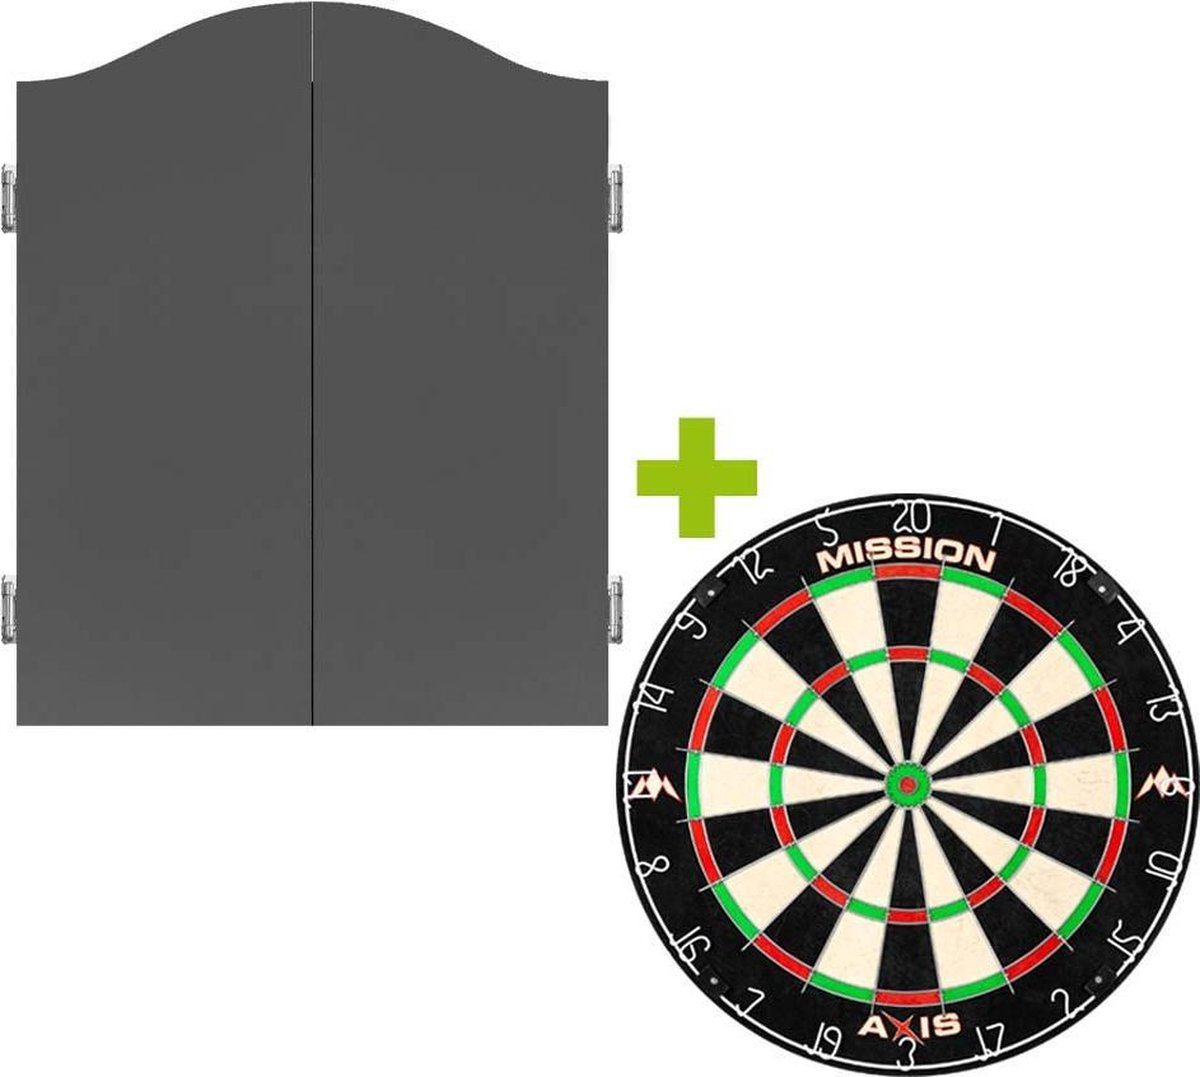 Mission Deluxe Plain Grey Dartkabinet + Mission Axis +